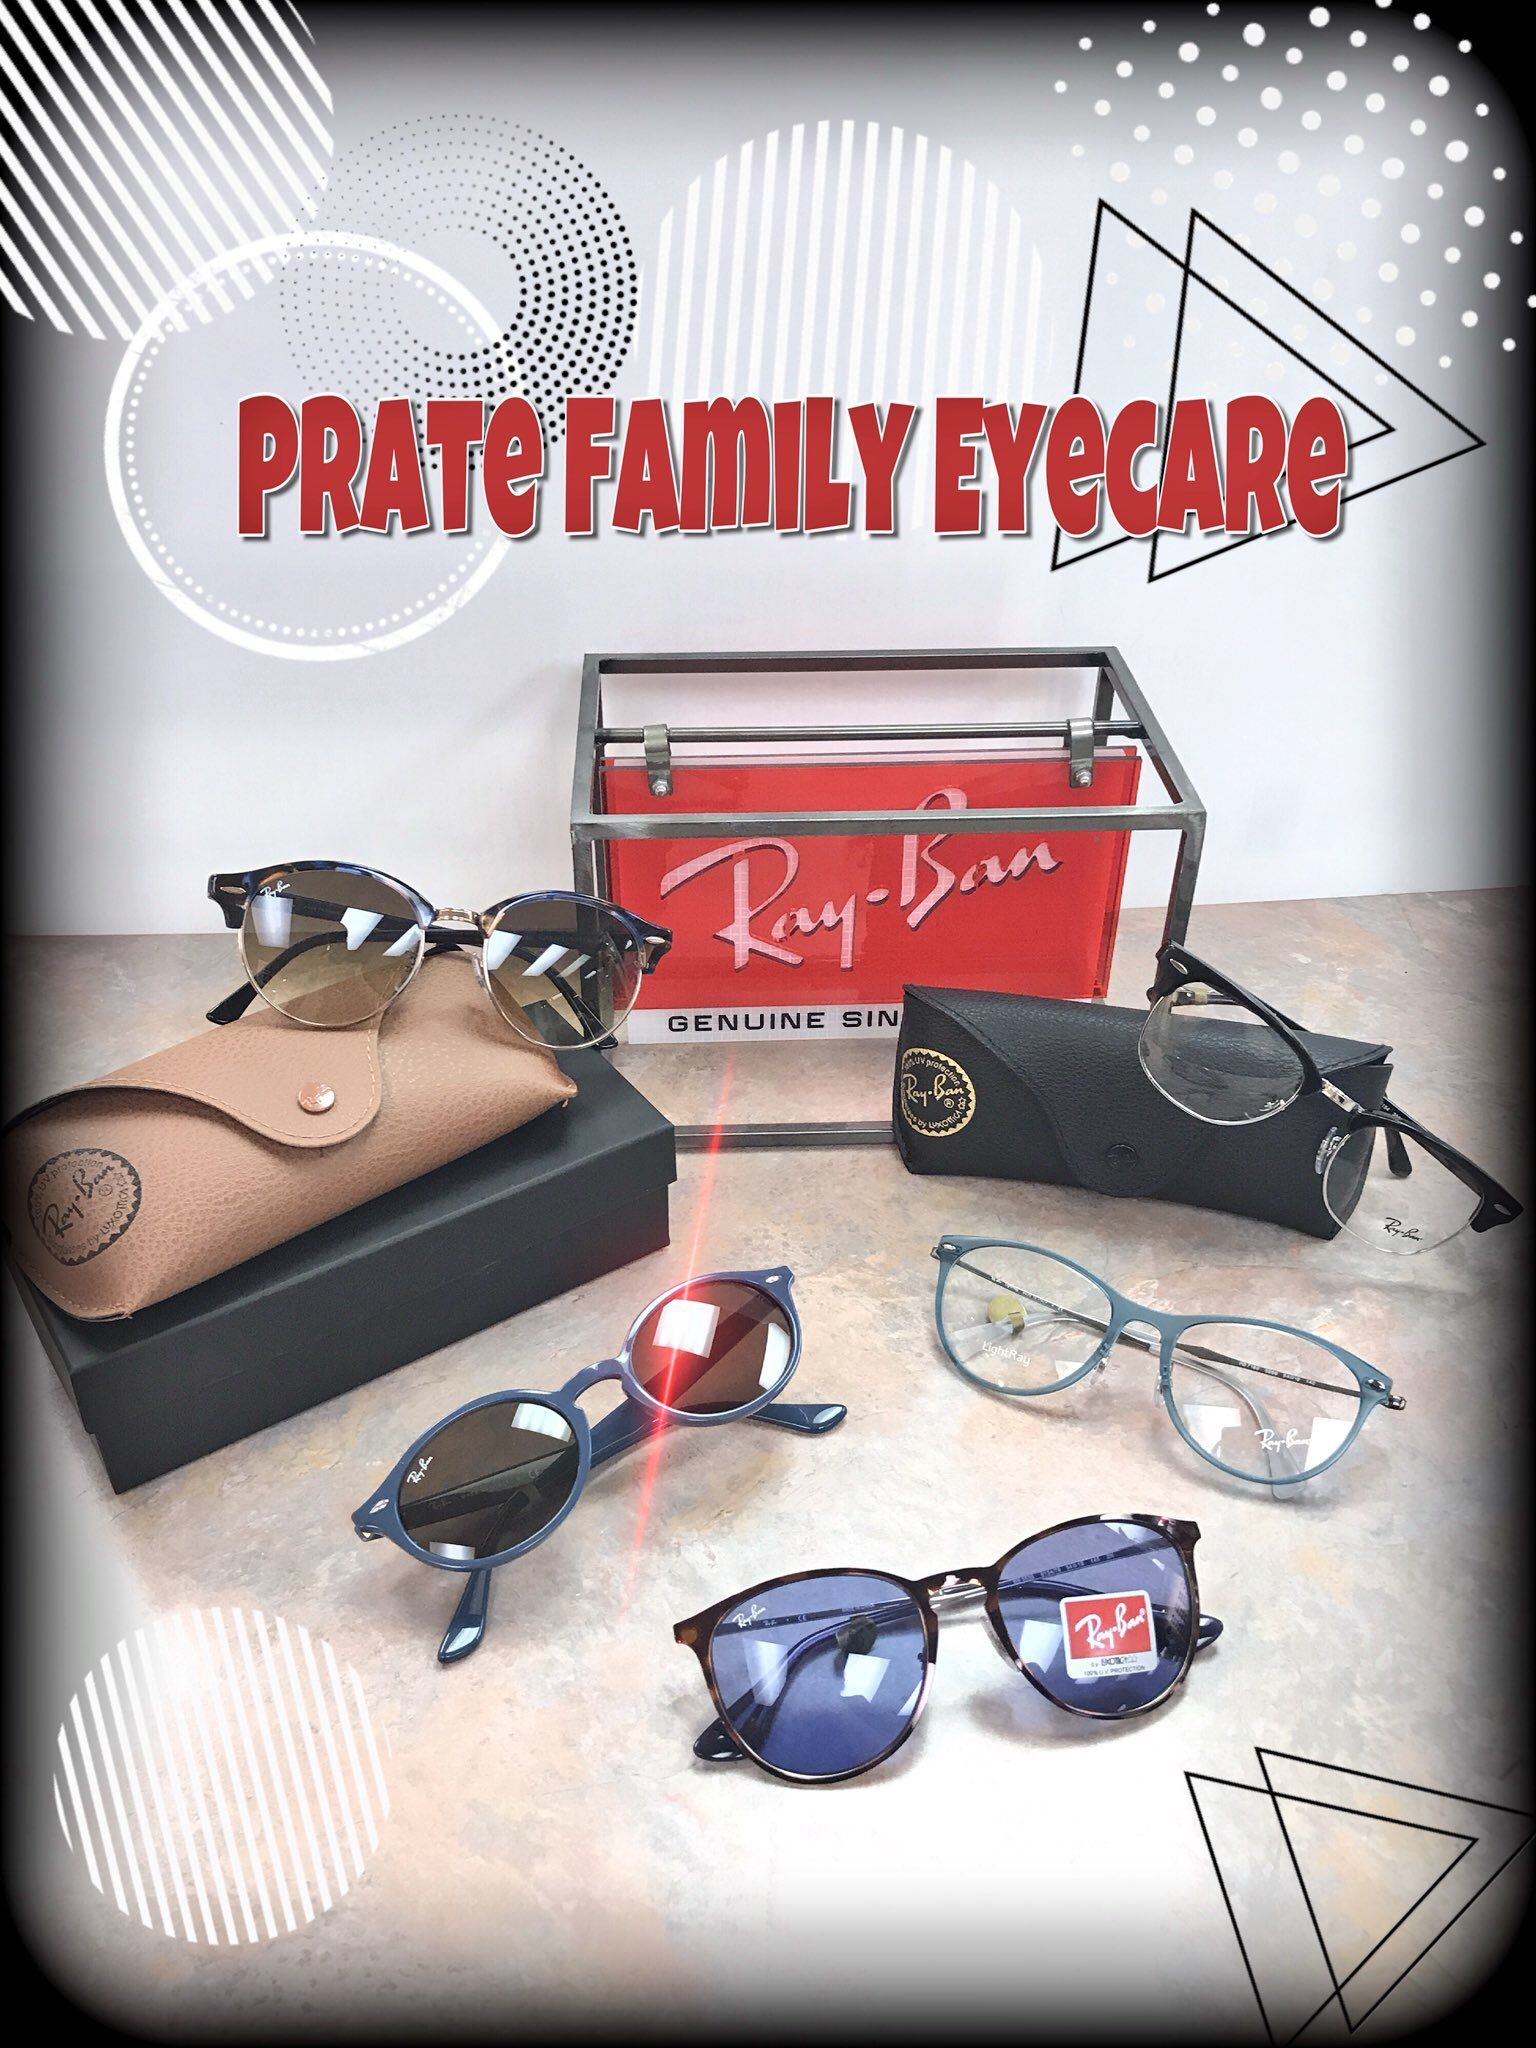 c9ad8b976bf7b Head out in style with a pair of Ray-Ban sunglasses or prescription glasses.  New styles have arrived! Prate Family Eye Care will help you look   see  your ...